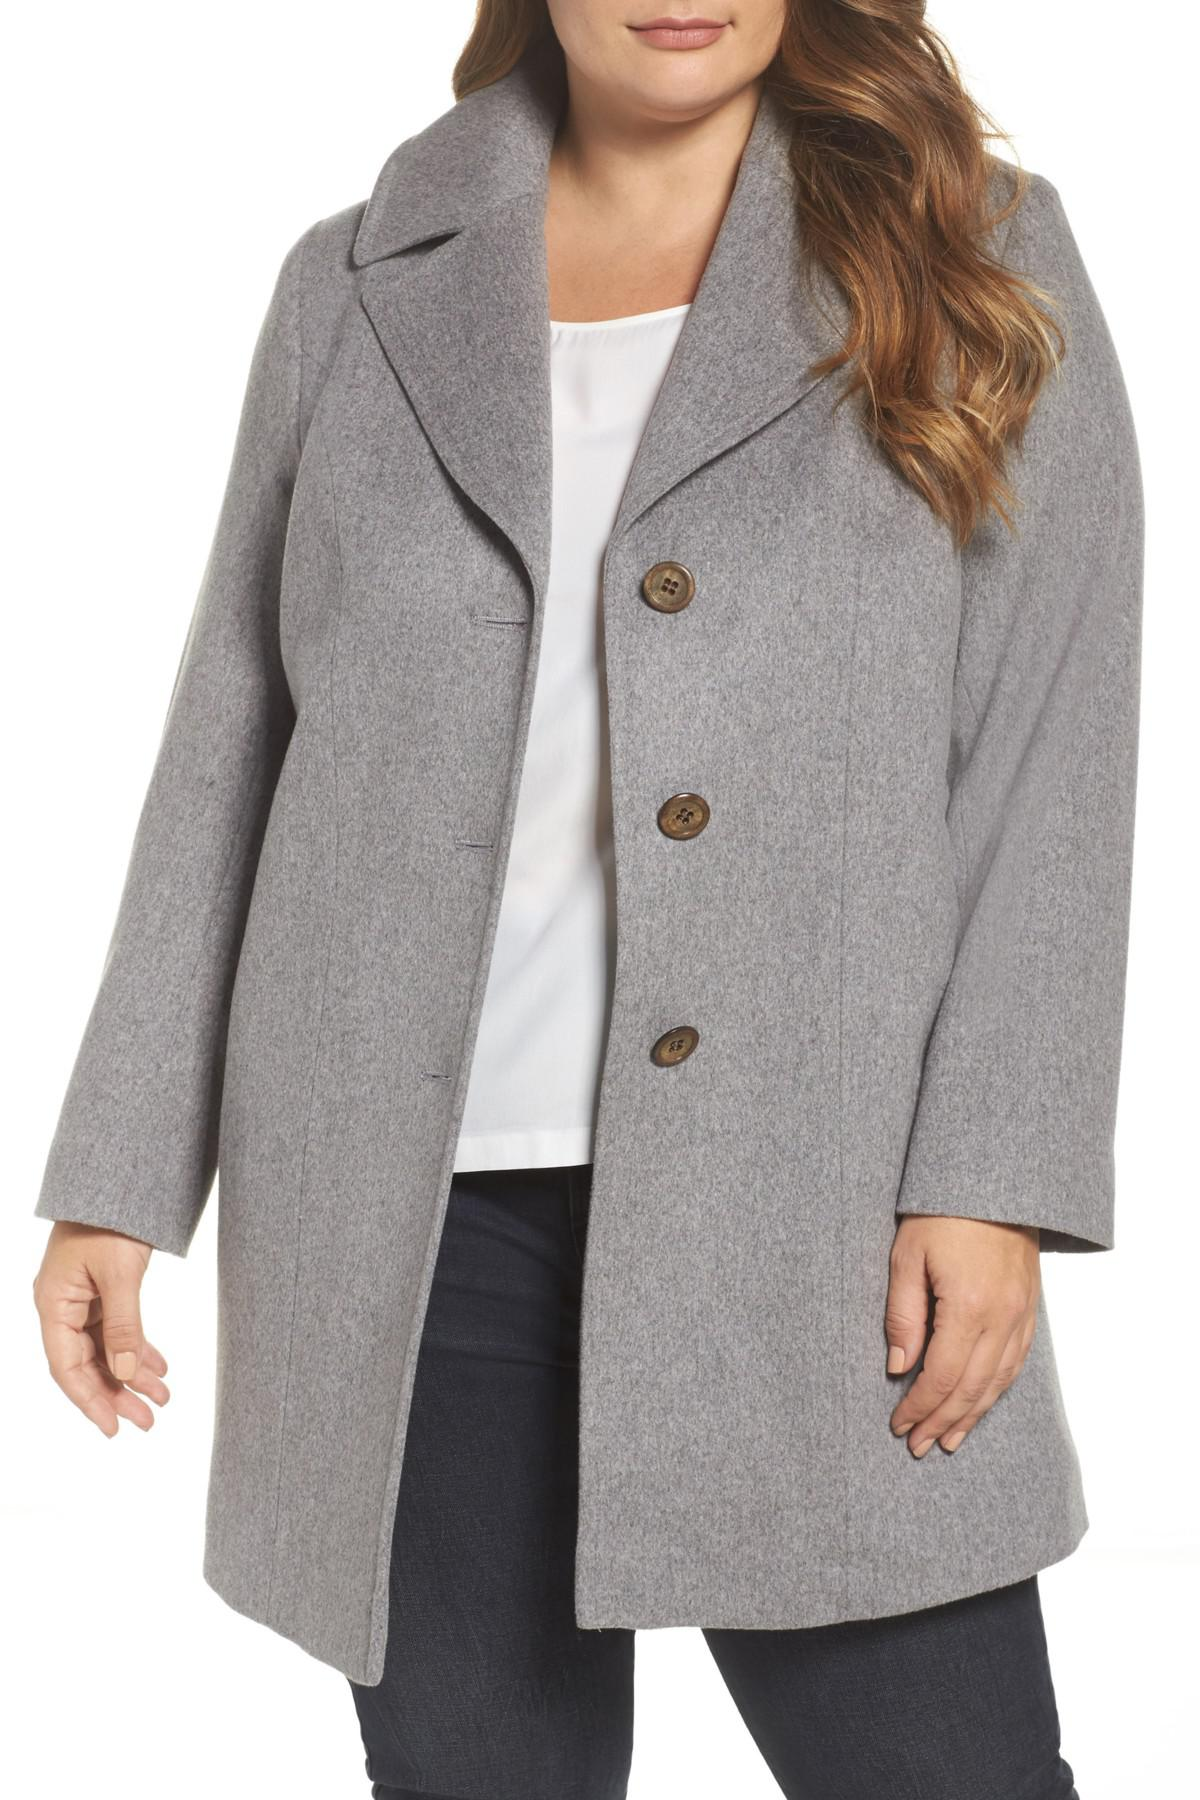 33acaf8aa4852 Gallery. Previously sold at  Nordstrom Rack · Women s Wool Coats ...